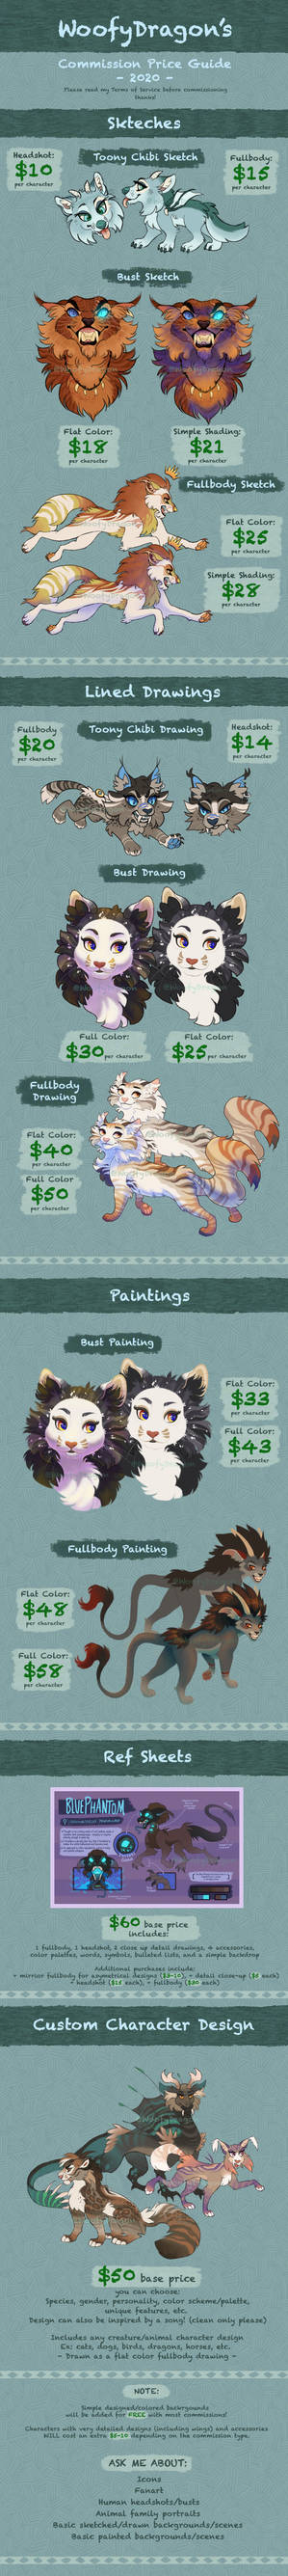 WoofyDragon's Commission Price Guide